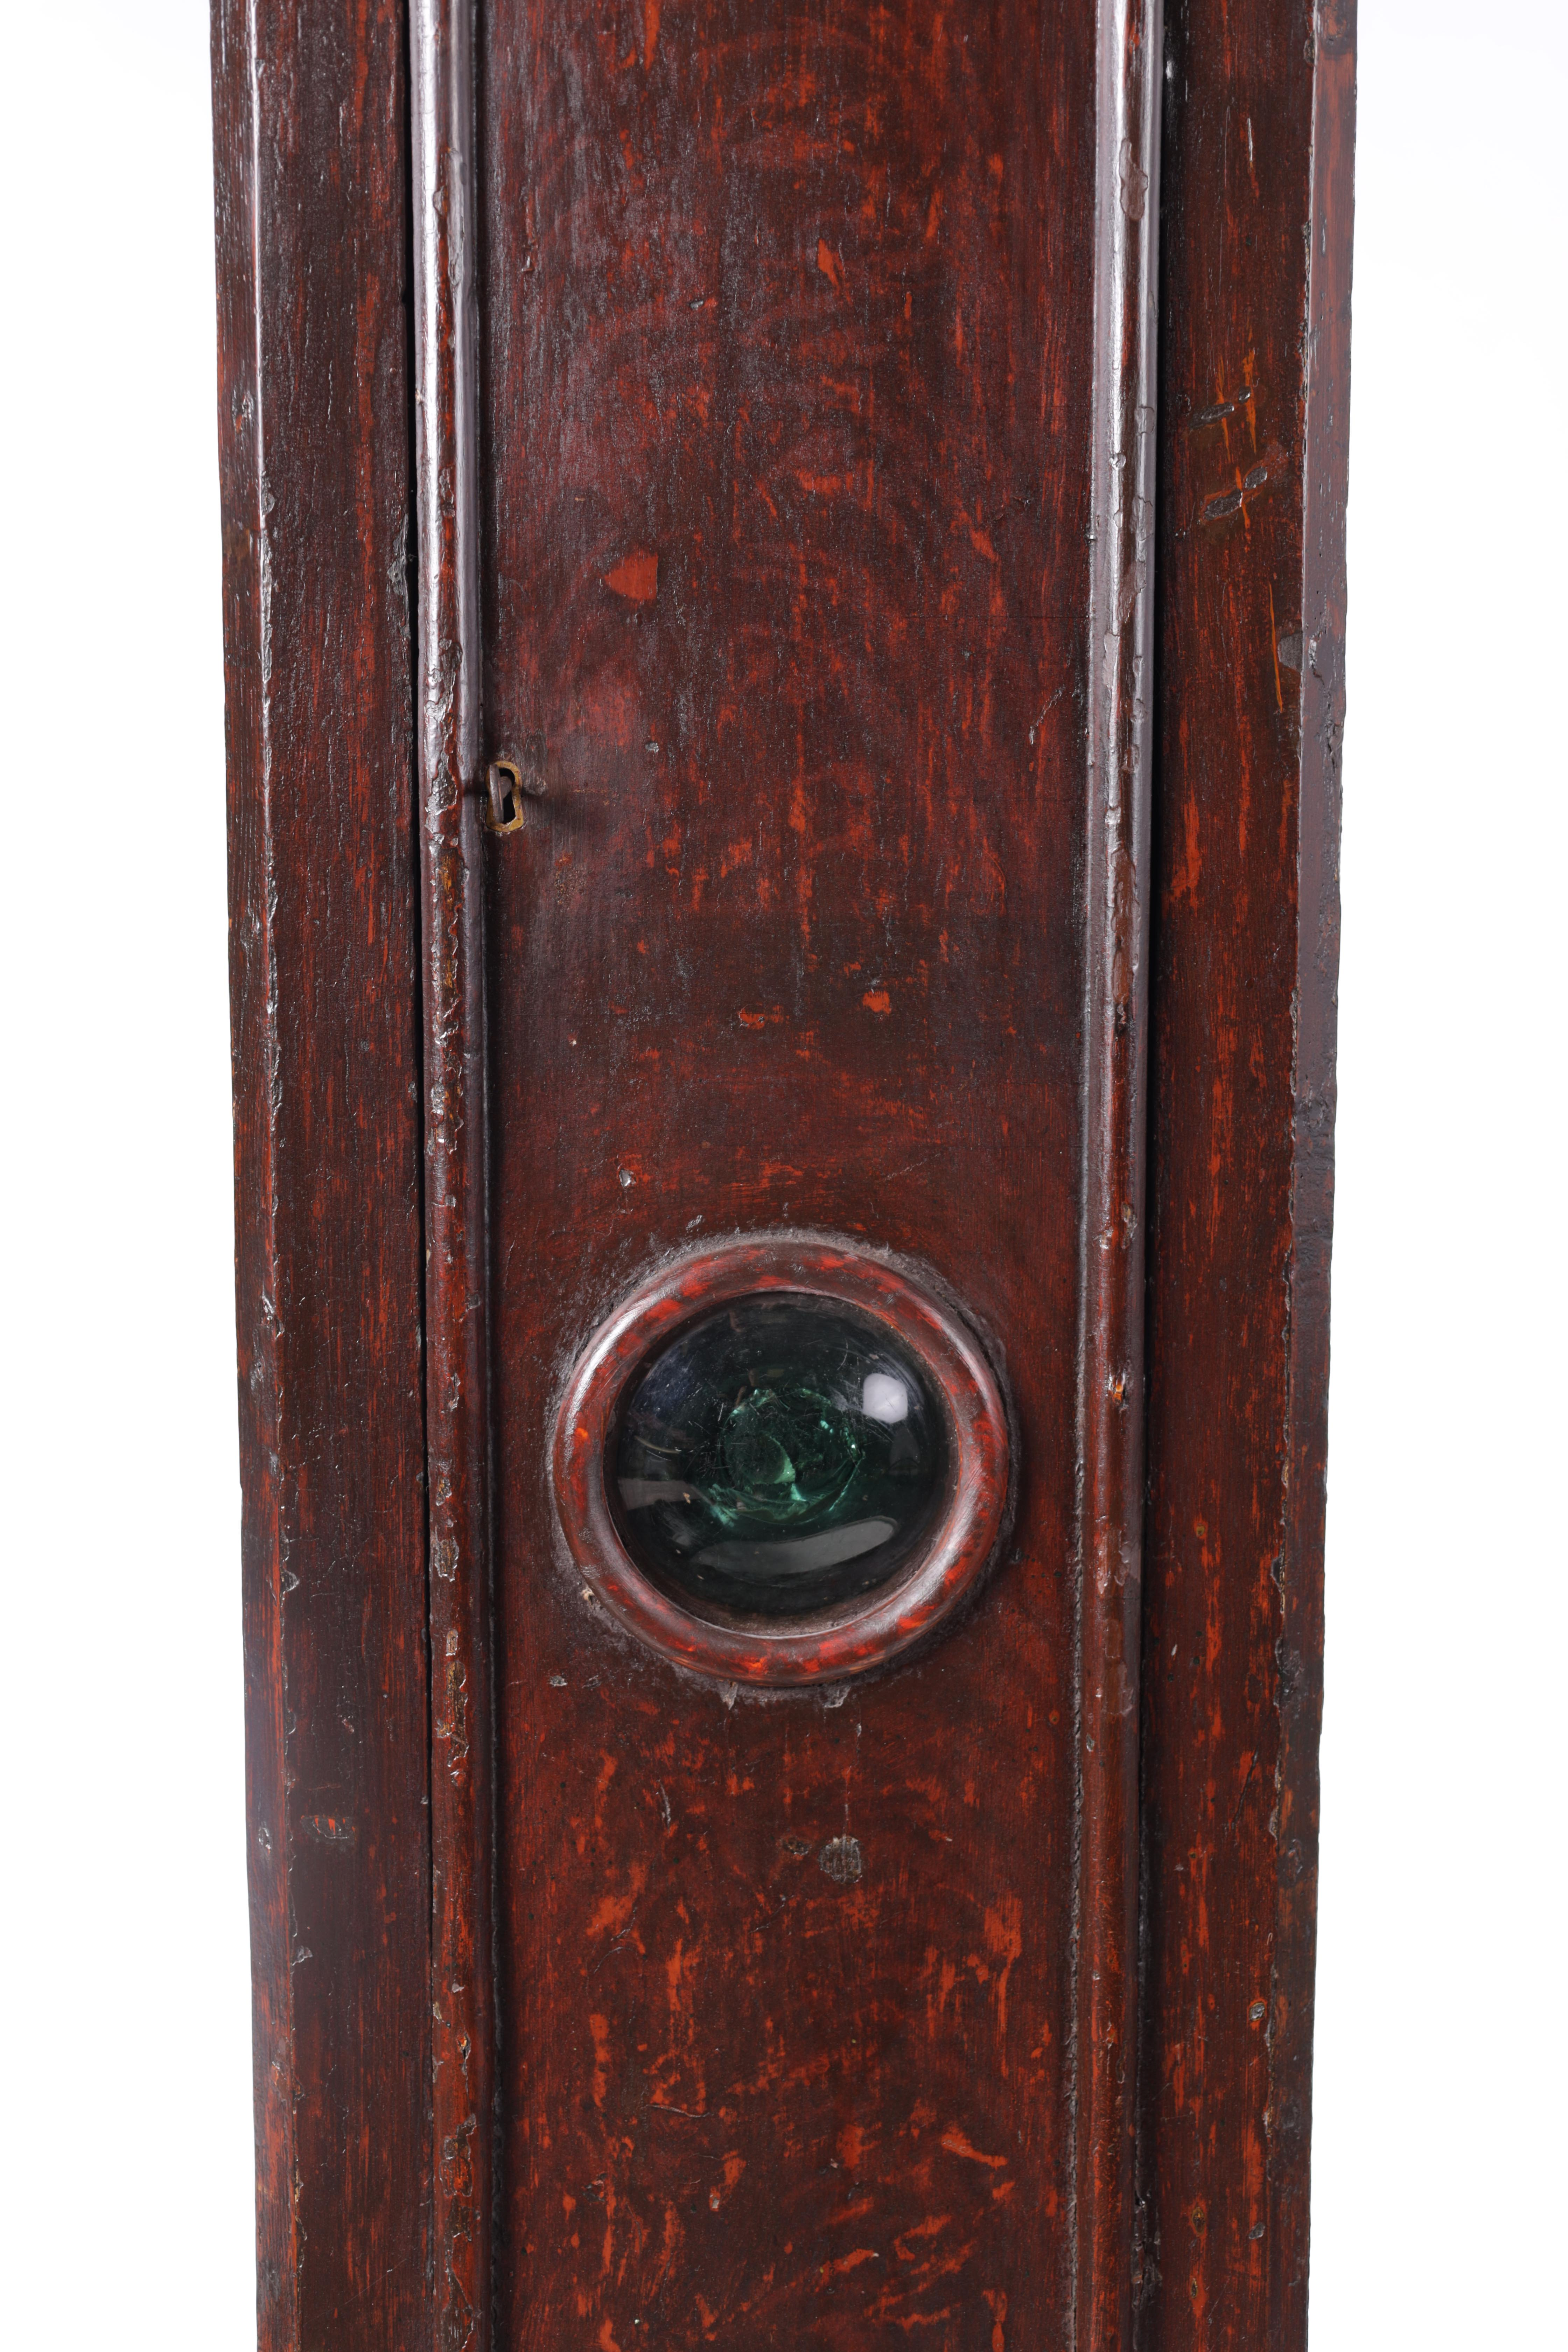 """THOMAS TALBOT, NAMPTWICH (NANTWICH) AN EARLY 18TH CENTURY 11"""" BRASS EIGHT-DAY LONGCASE CLOCK in a - Image 4 of 5"""